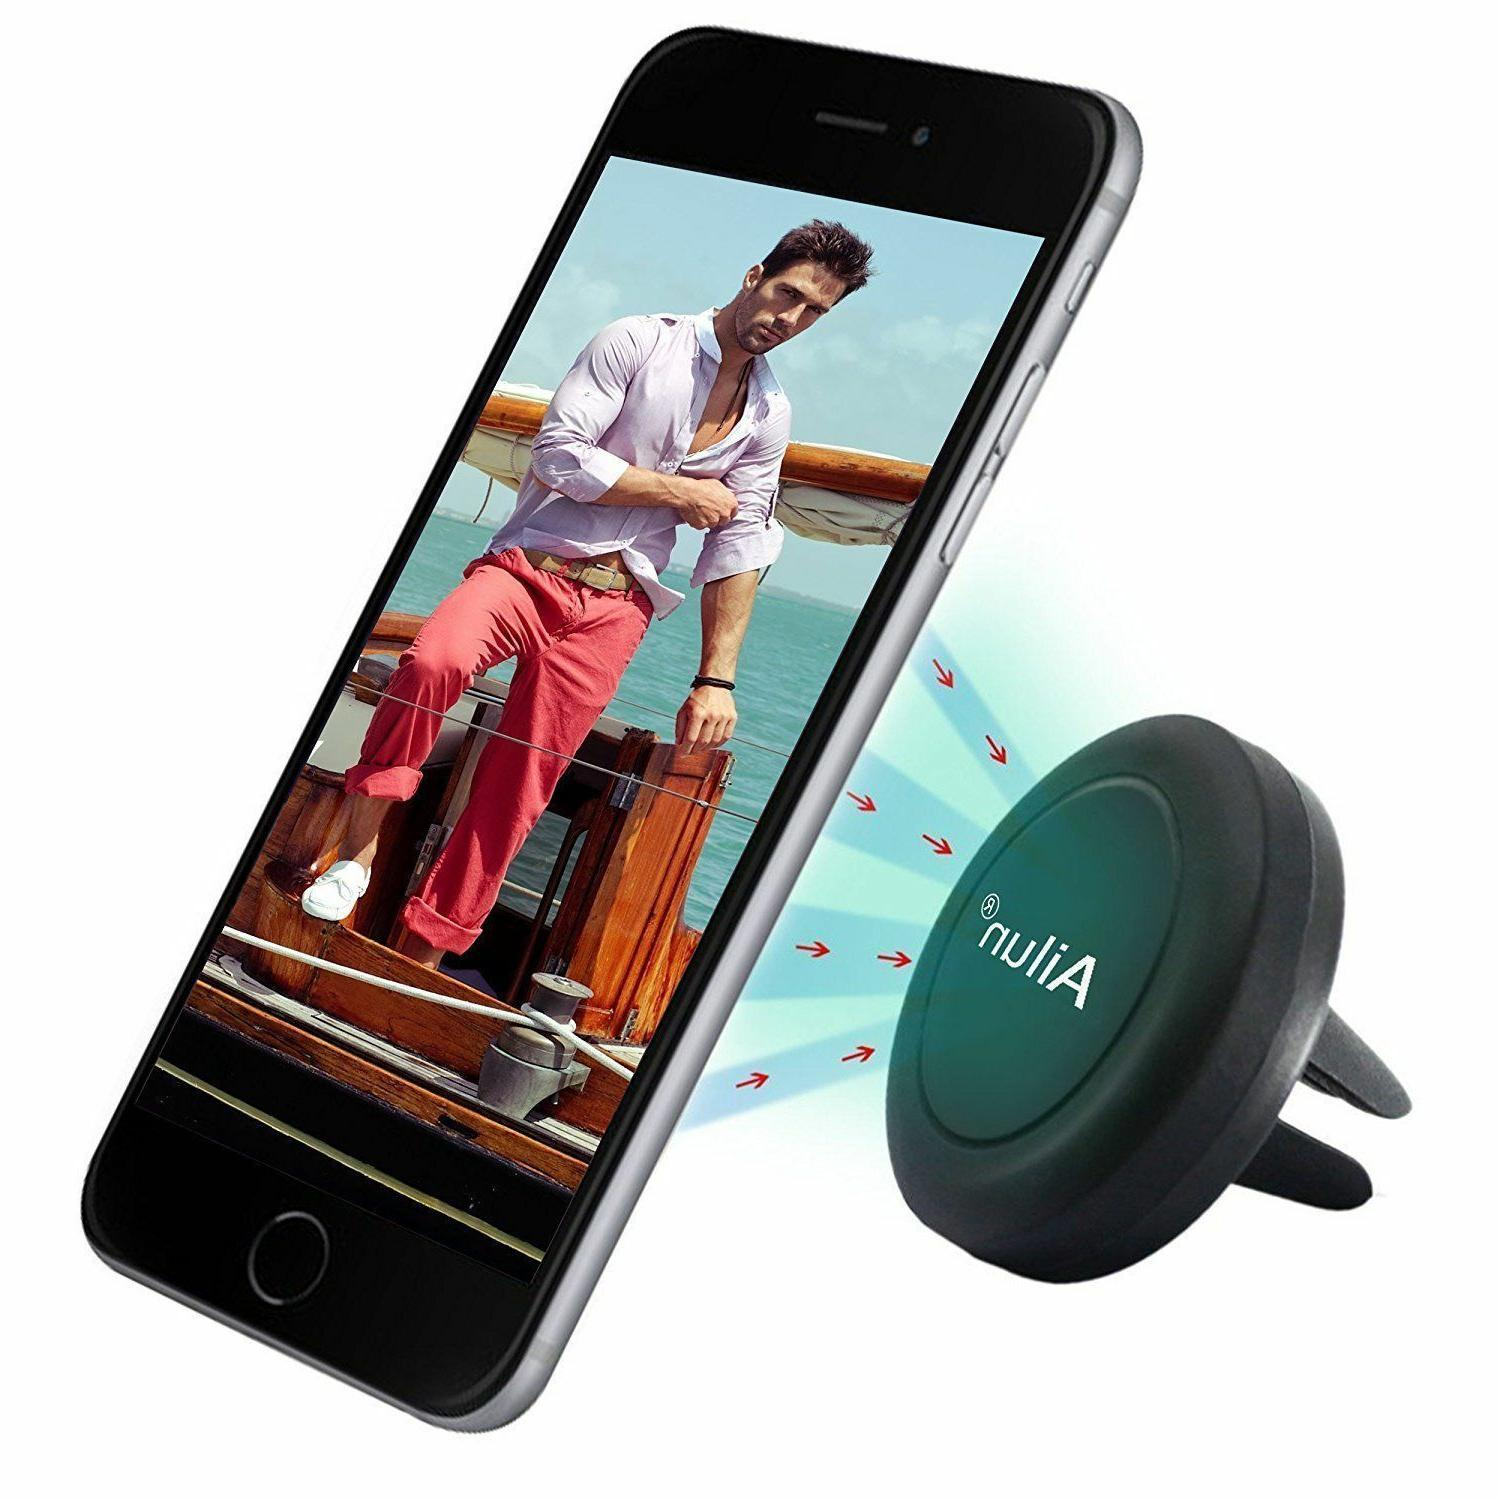 AILUN Mount Magnetic Air Vent Phone Holder iPhone 7 Black